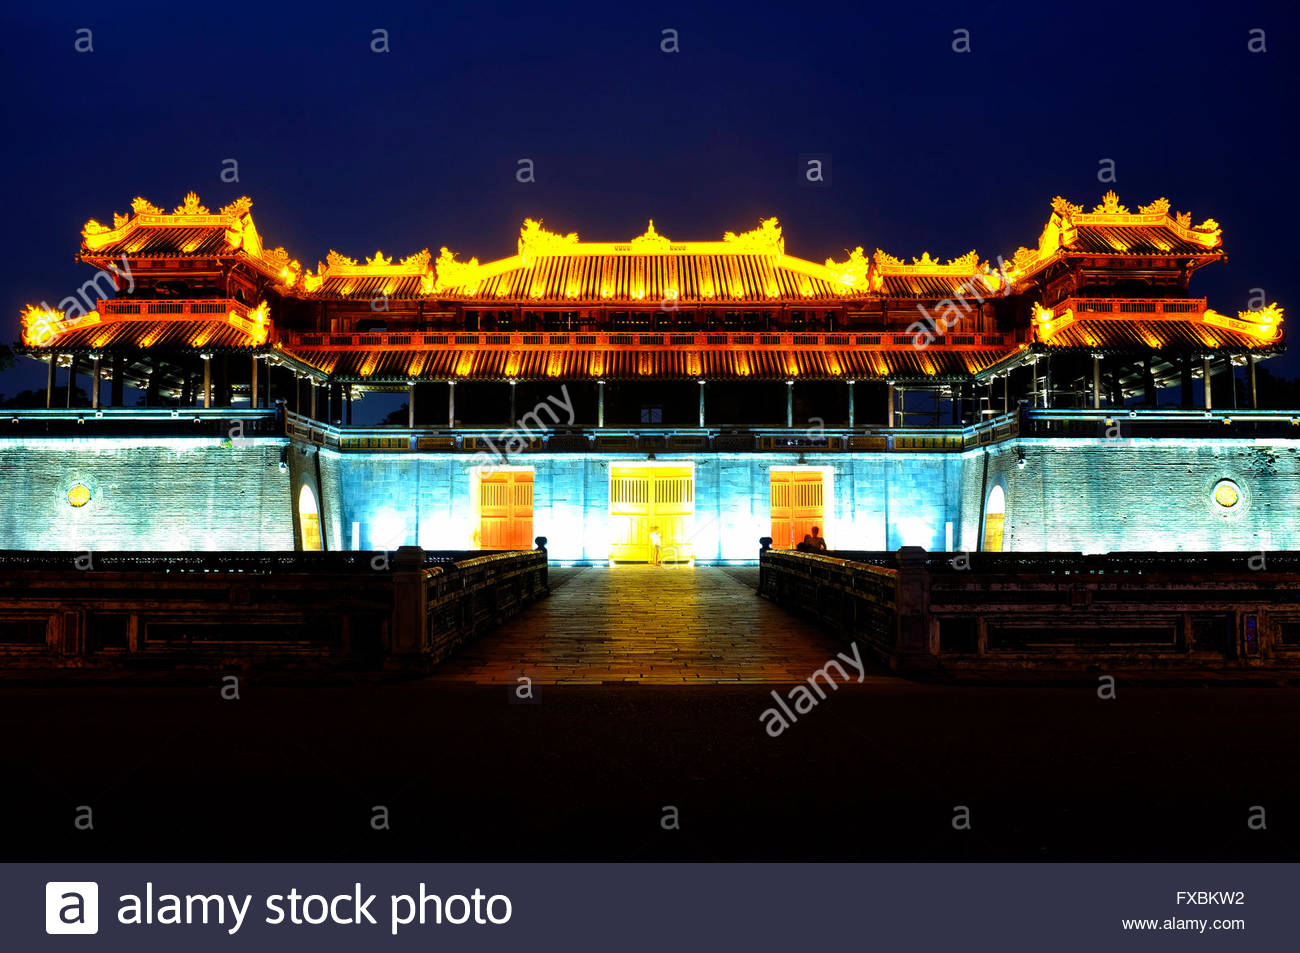 Ngọ Mon Gate to the Imperial citadel, Hue, Vietnam - Stock Image